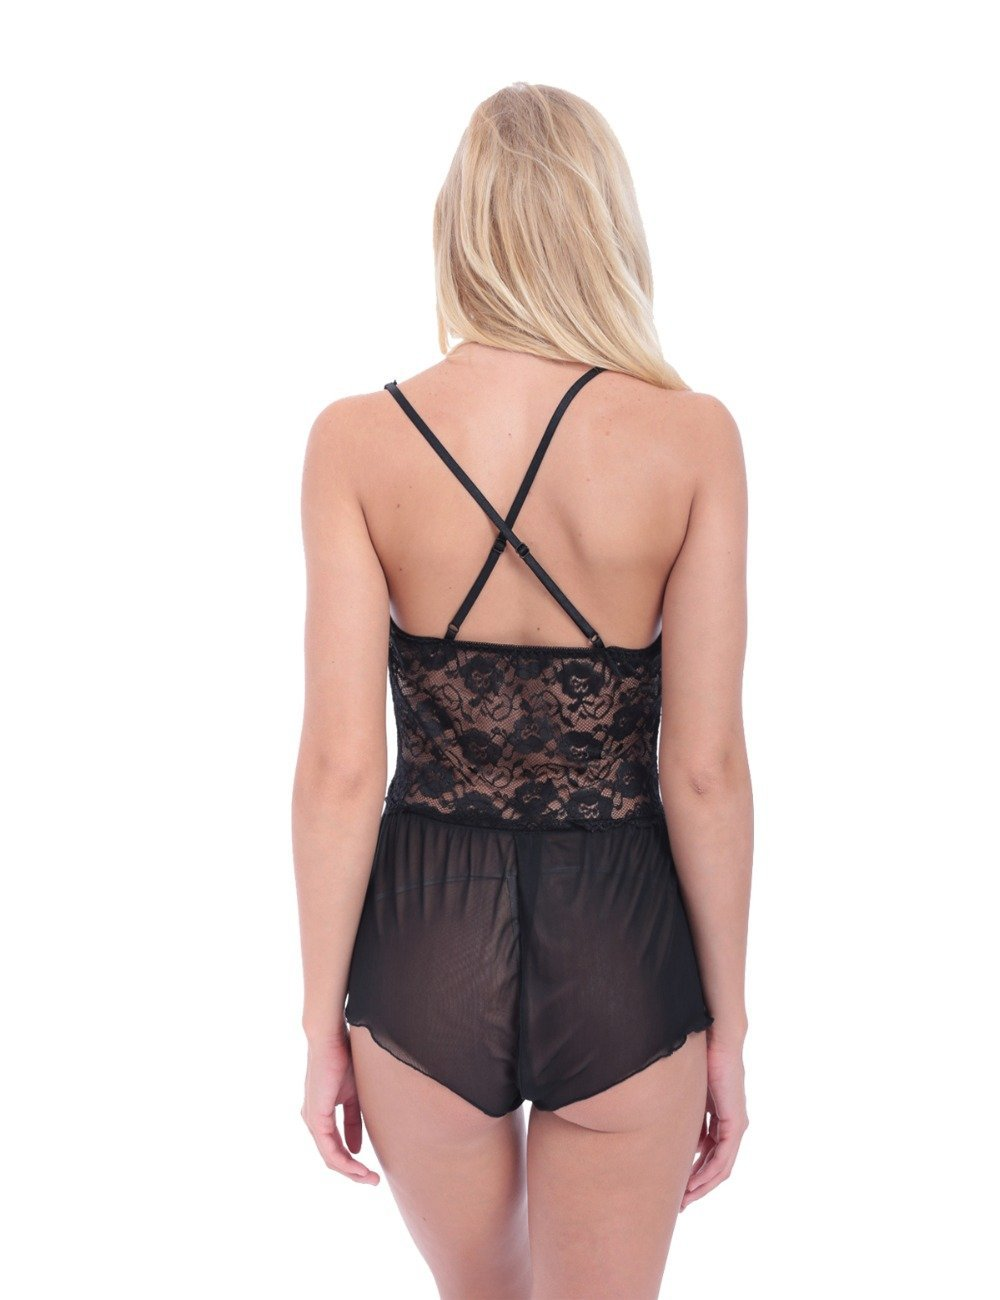 Crotchless Bodysuit - Black